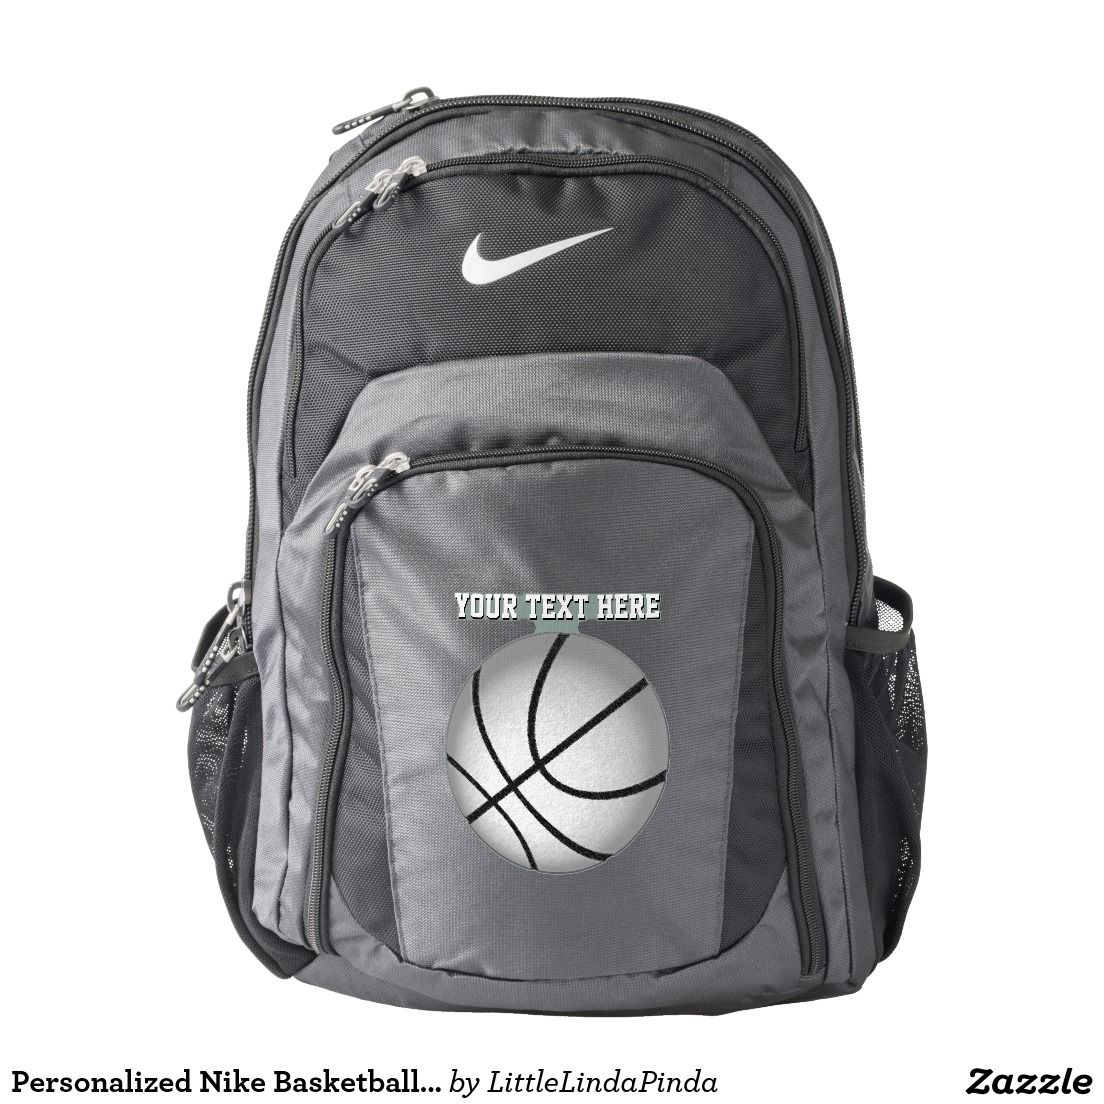 4092ad3ccb5 Personalized Nike Basketball Backpacks with YOUR TEXT typed into text box.  Great basketball gifts for